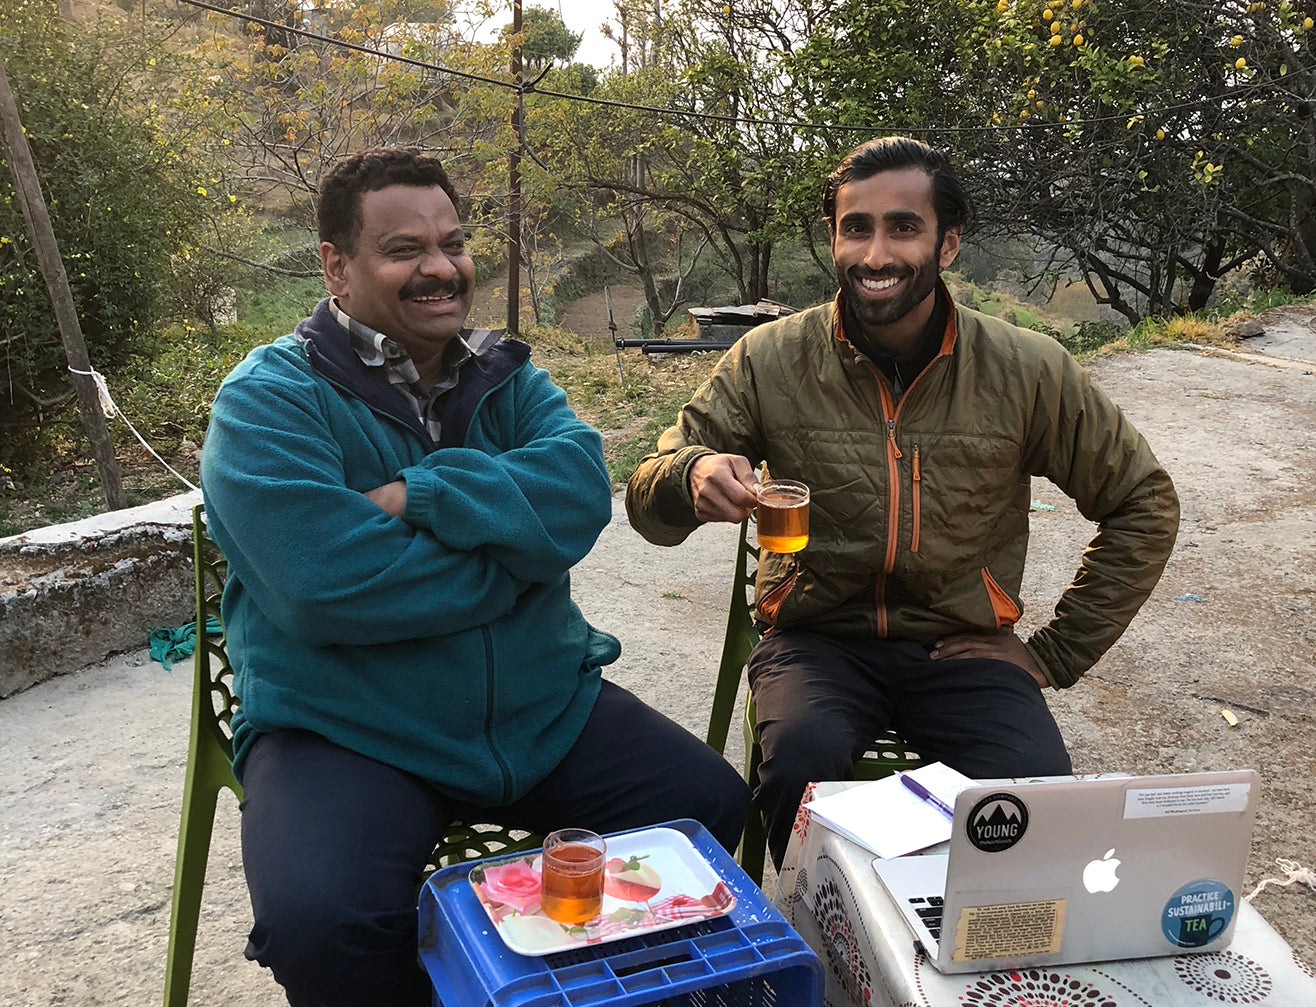 Desmond Birbeck and Raj Vable enjoy tea together at Desmond's home in Kumaon, India